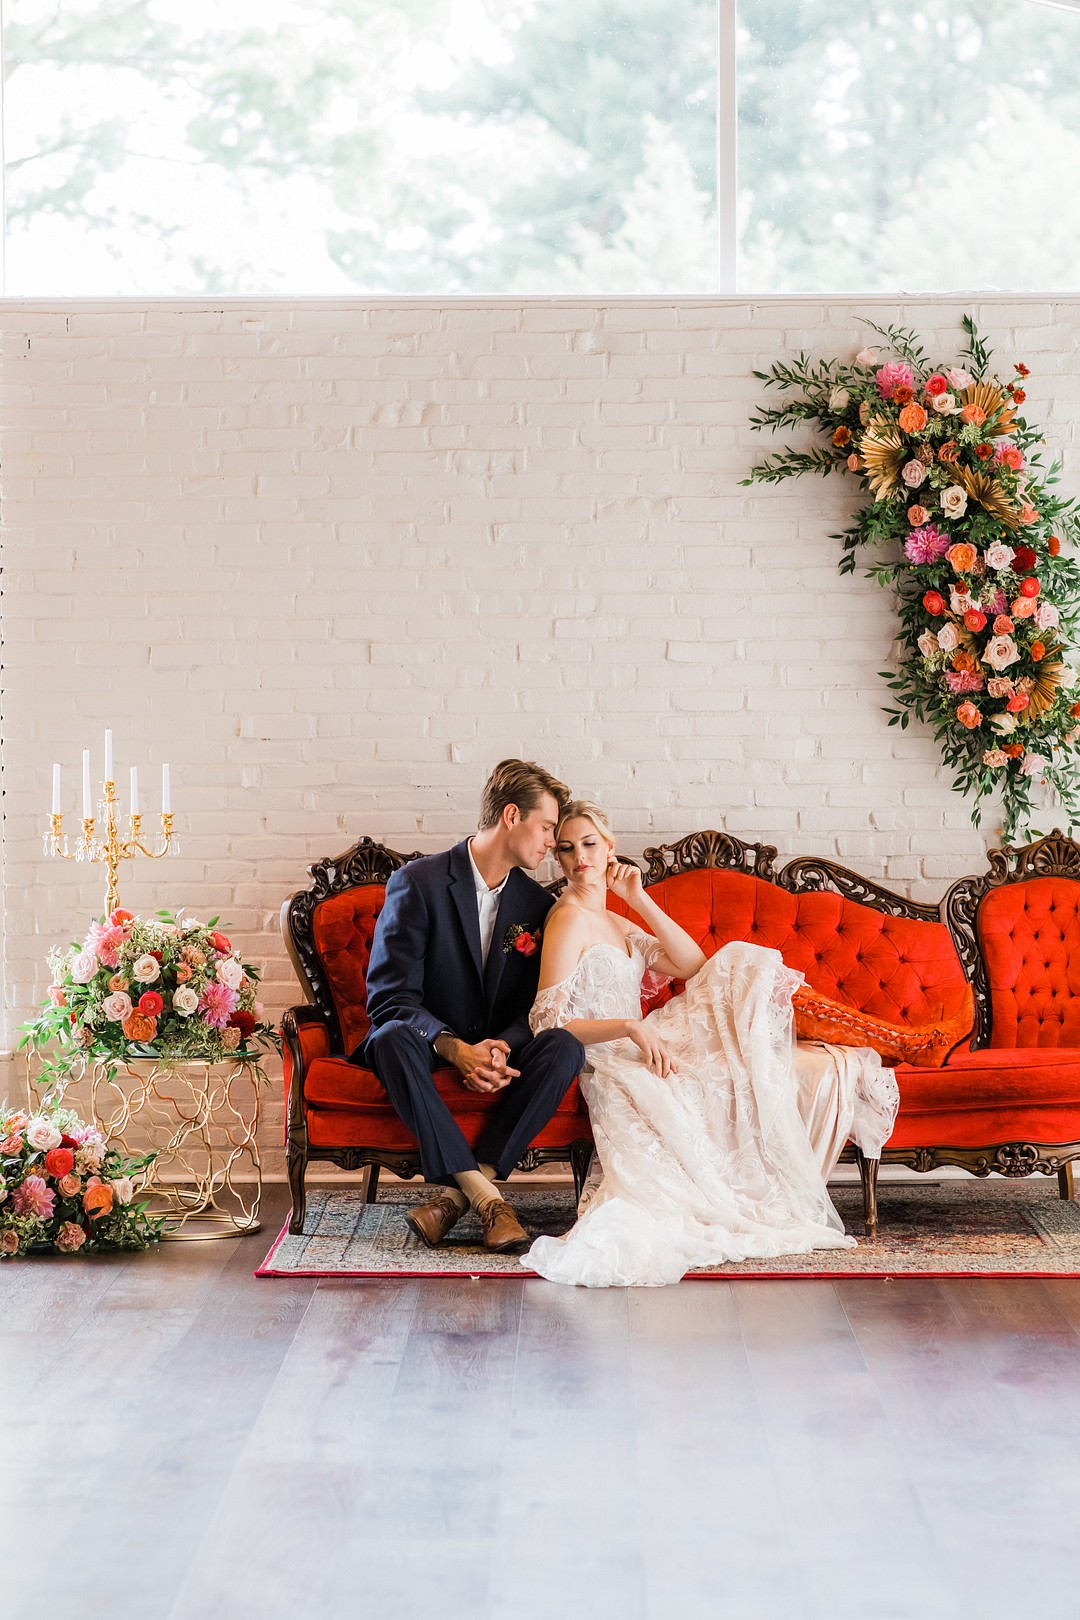 bride and groom sitting on a red couch